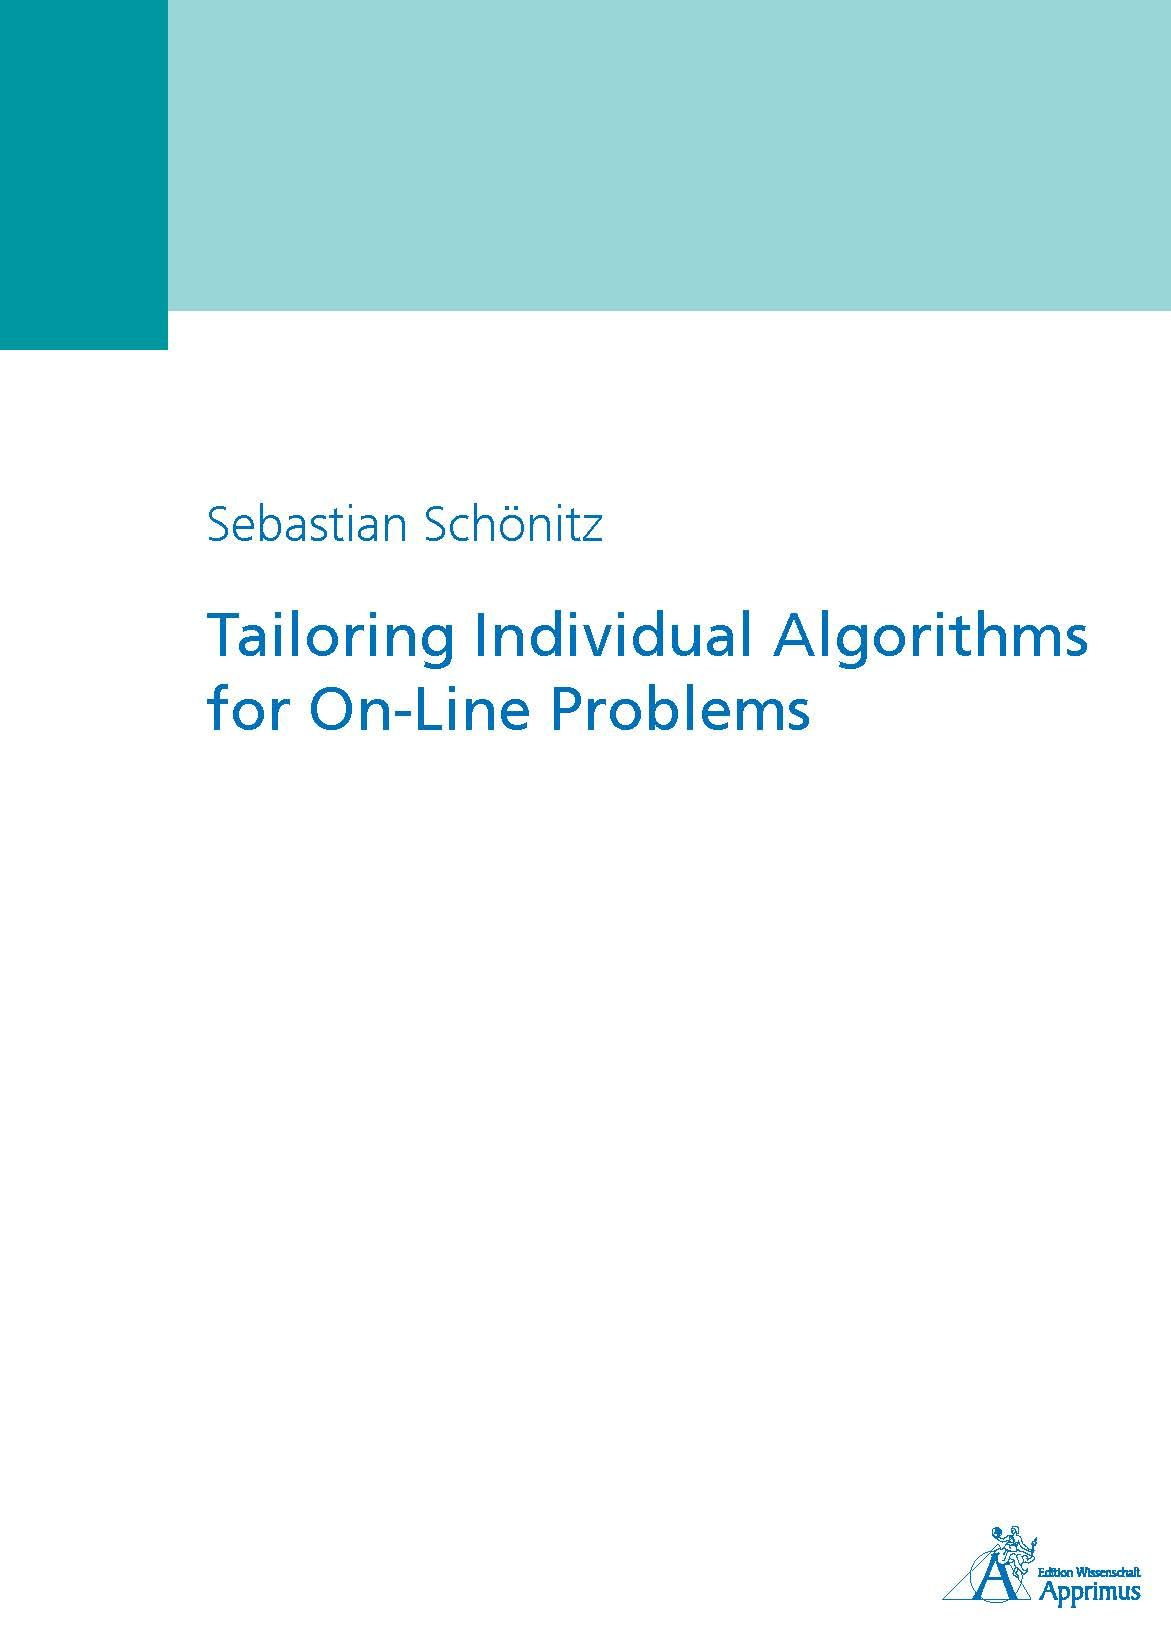 Tailoring Individual Algorithms for On-Line Problems